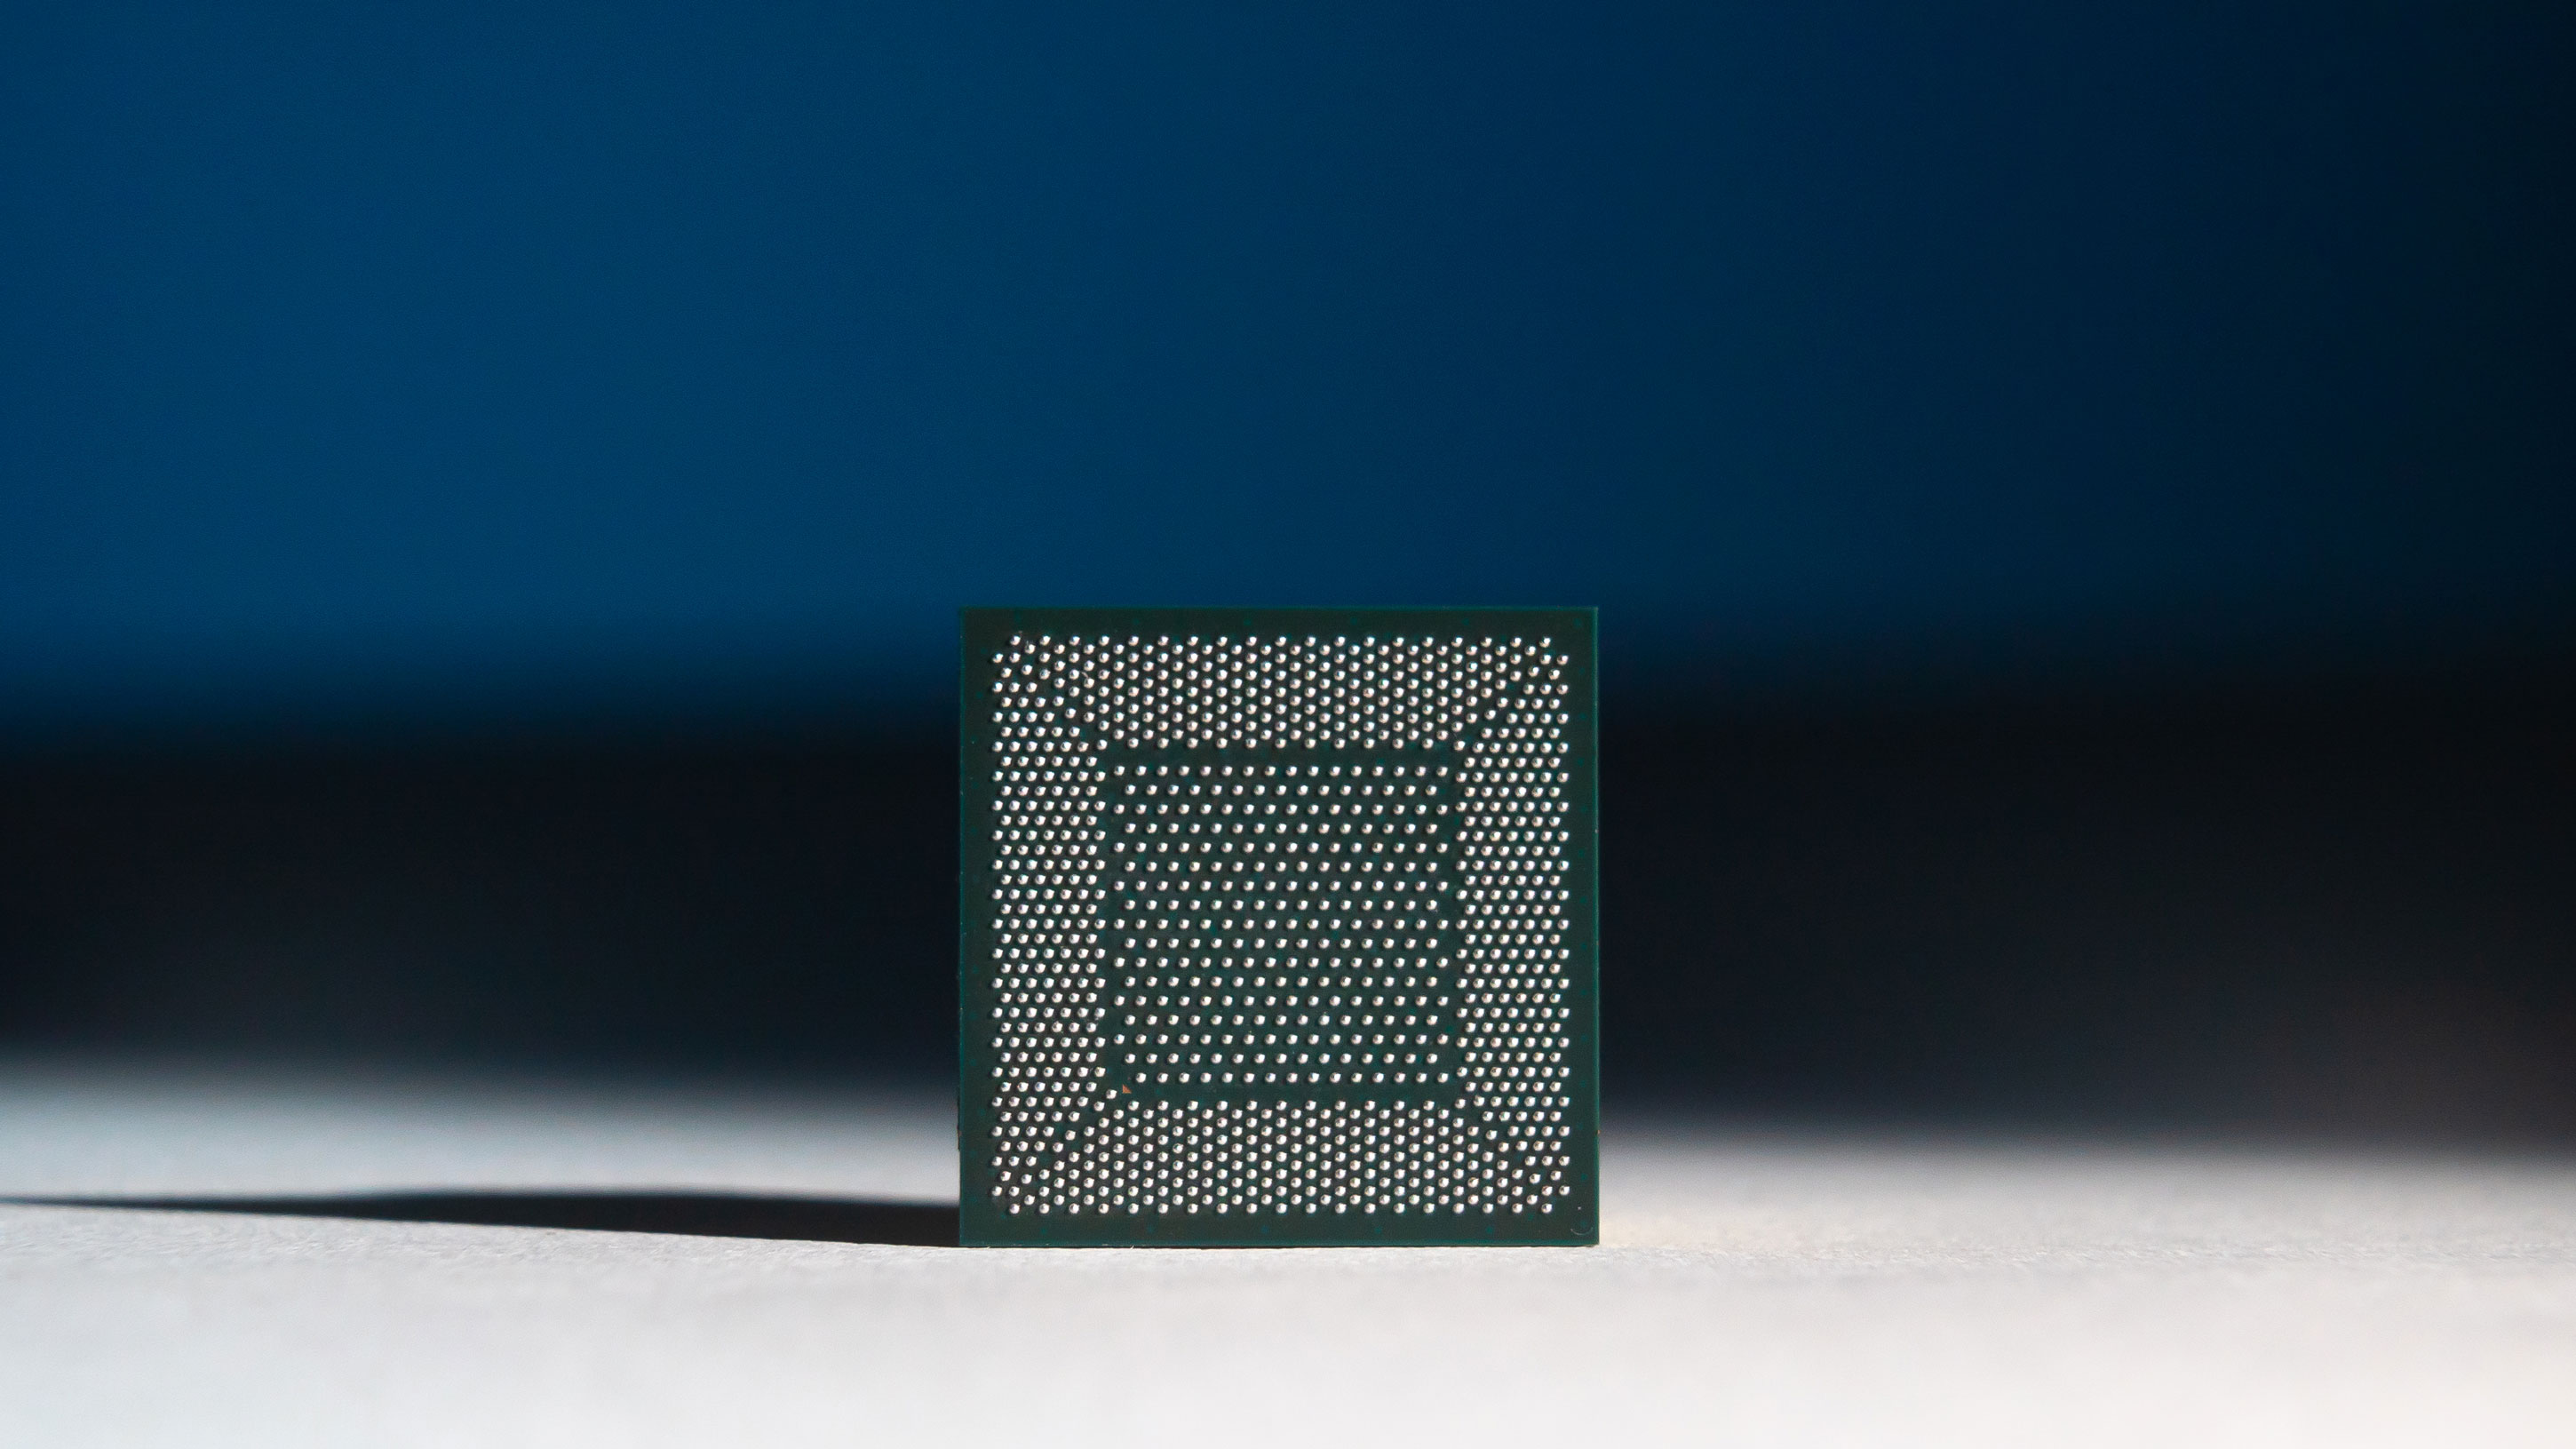 Intel chip for AI